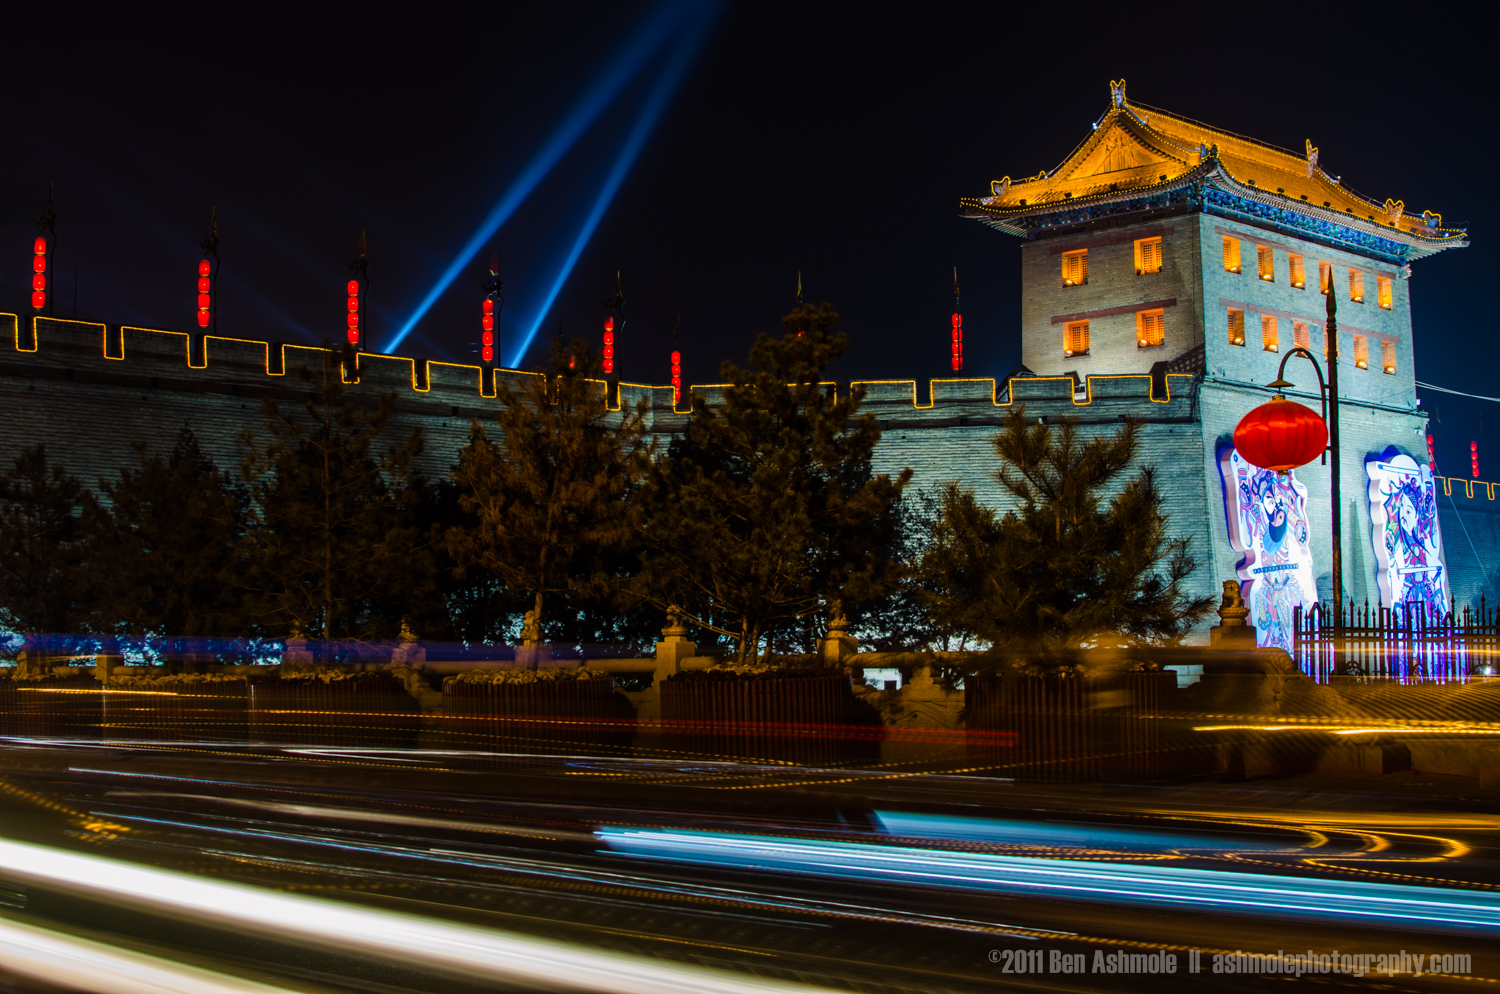 Old With New, Xi'an, Shaanxi Province, China, Ben Ashmole